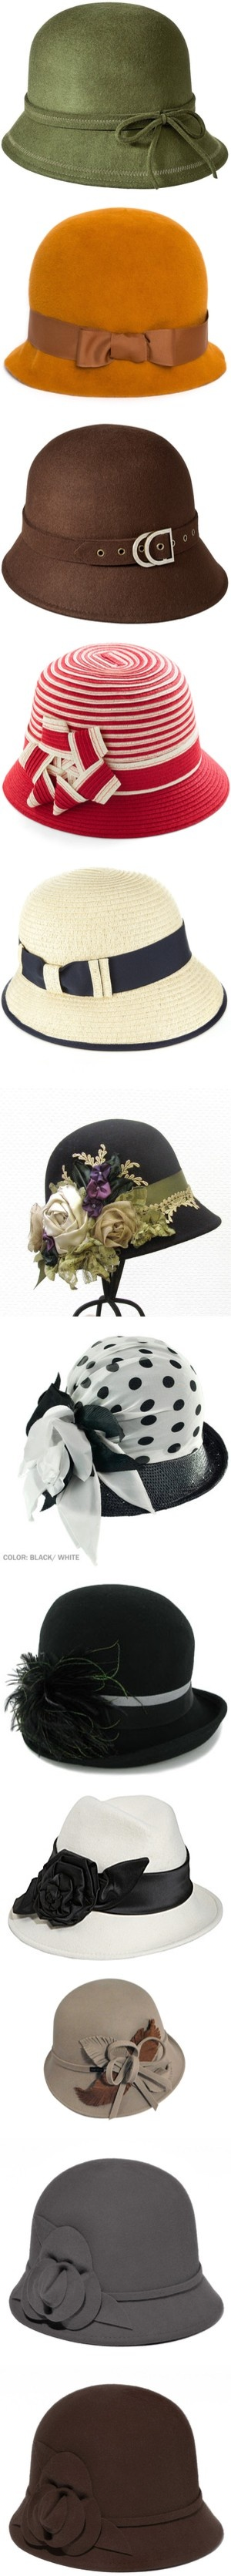 """cloche vintage hats"" by countrycousin ❤ liked on Polyvore"